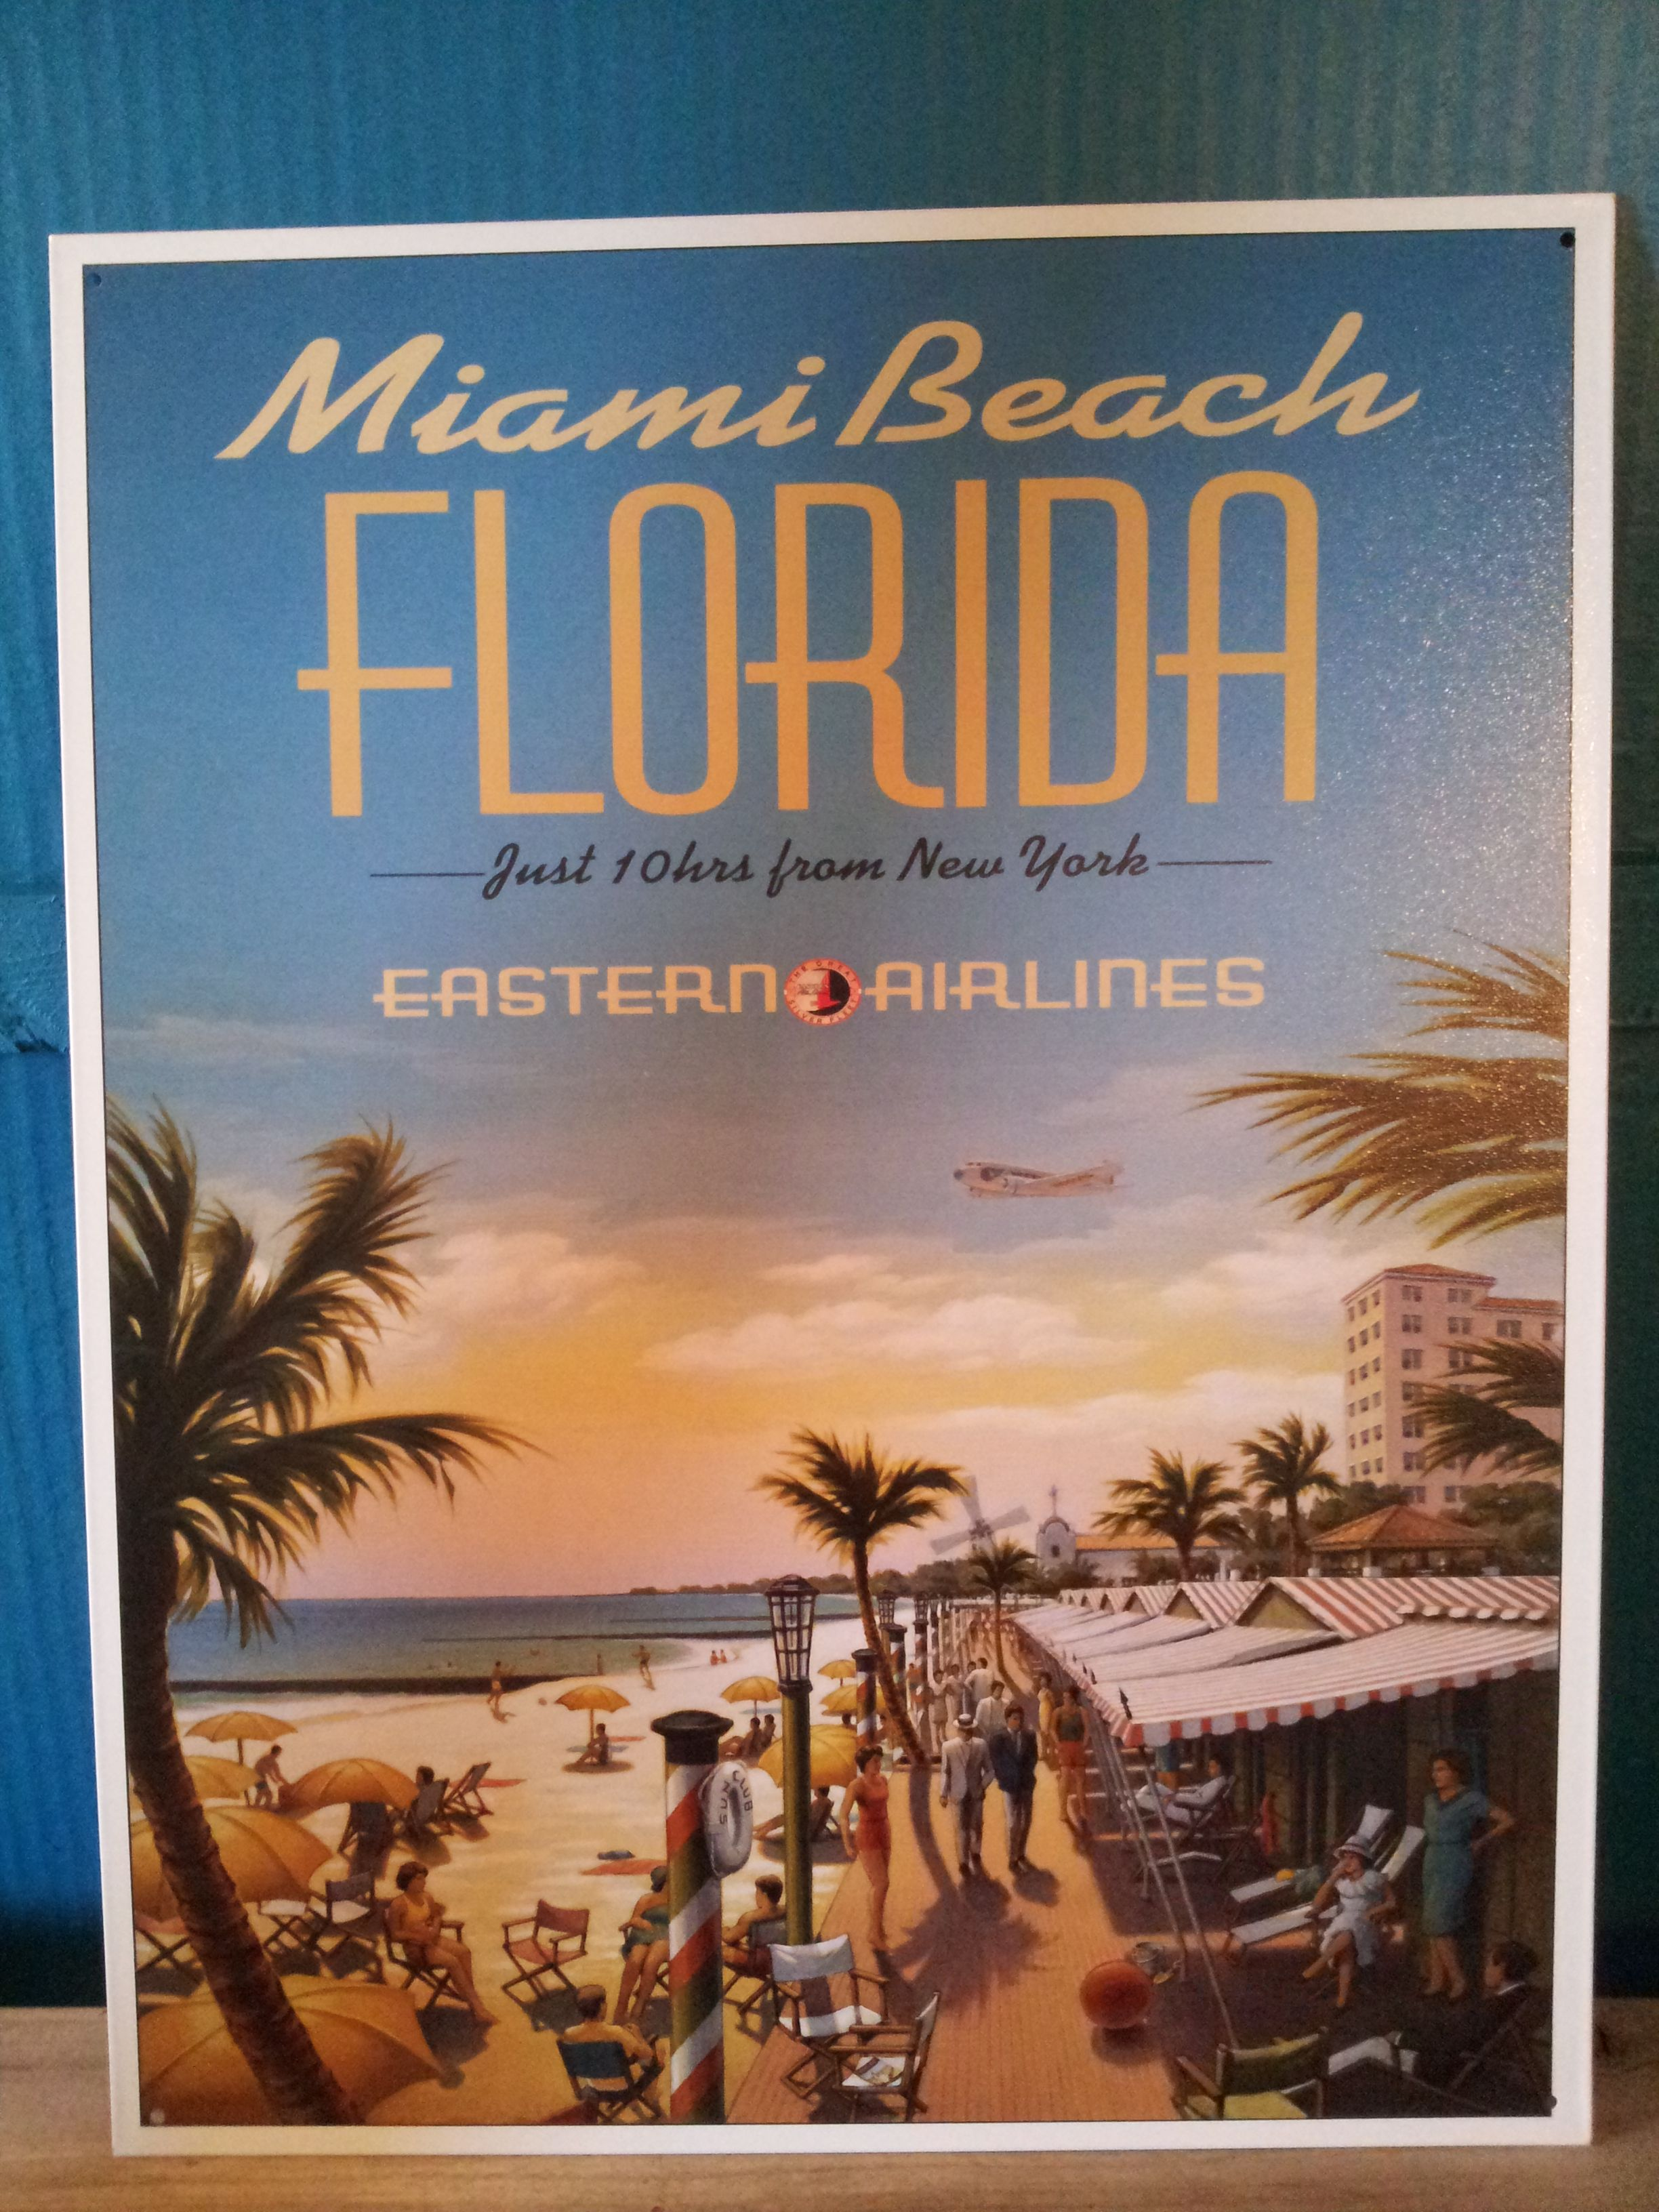 I M Selling This Sign For 20 Obo On Craigslist Measurements Are 16 X 12 You Can Call Or Text Me 36 Florida Poster Beach Posters Vintage Travel Posters